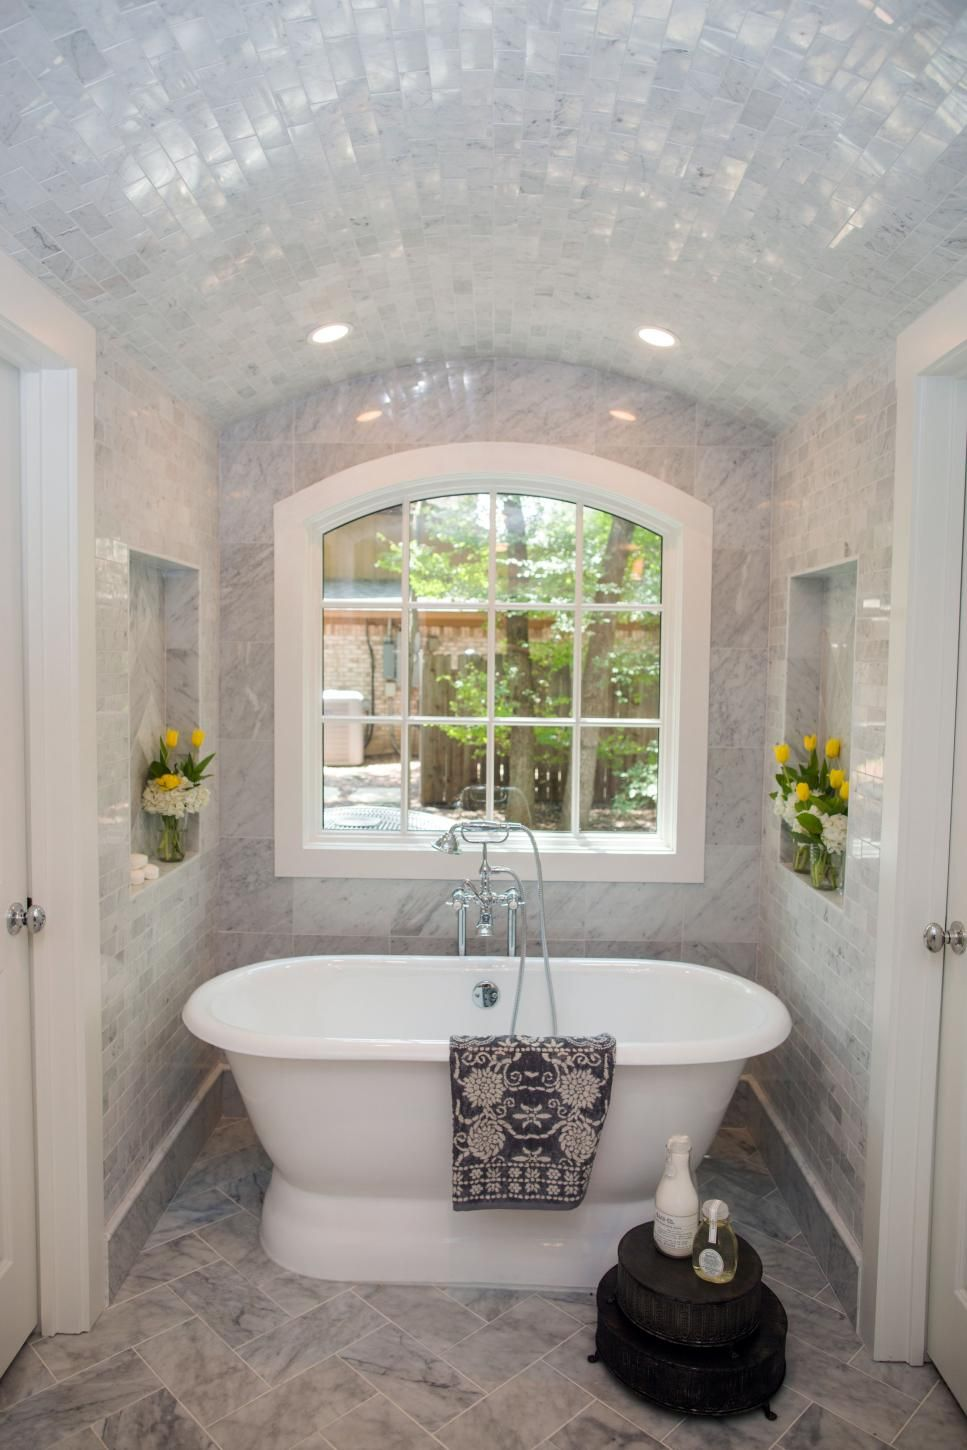 The new master bathroom features this spectacular